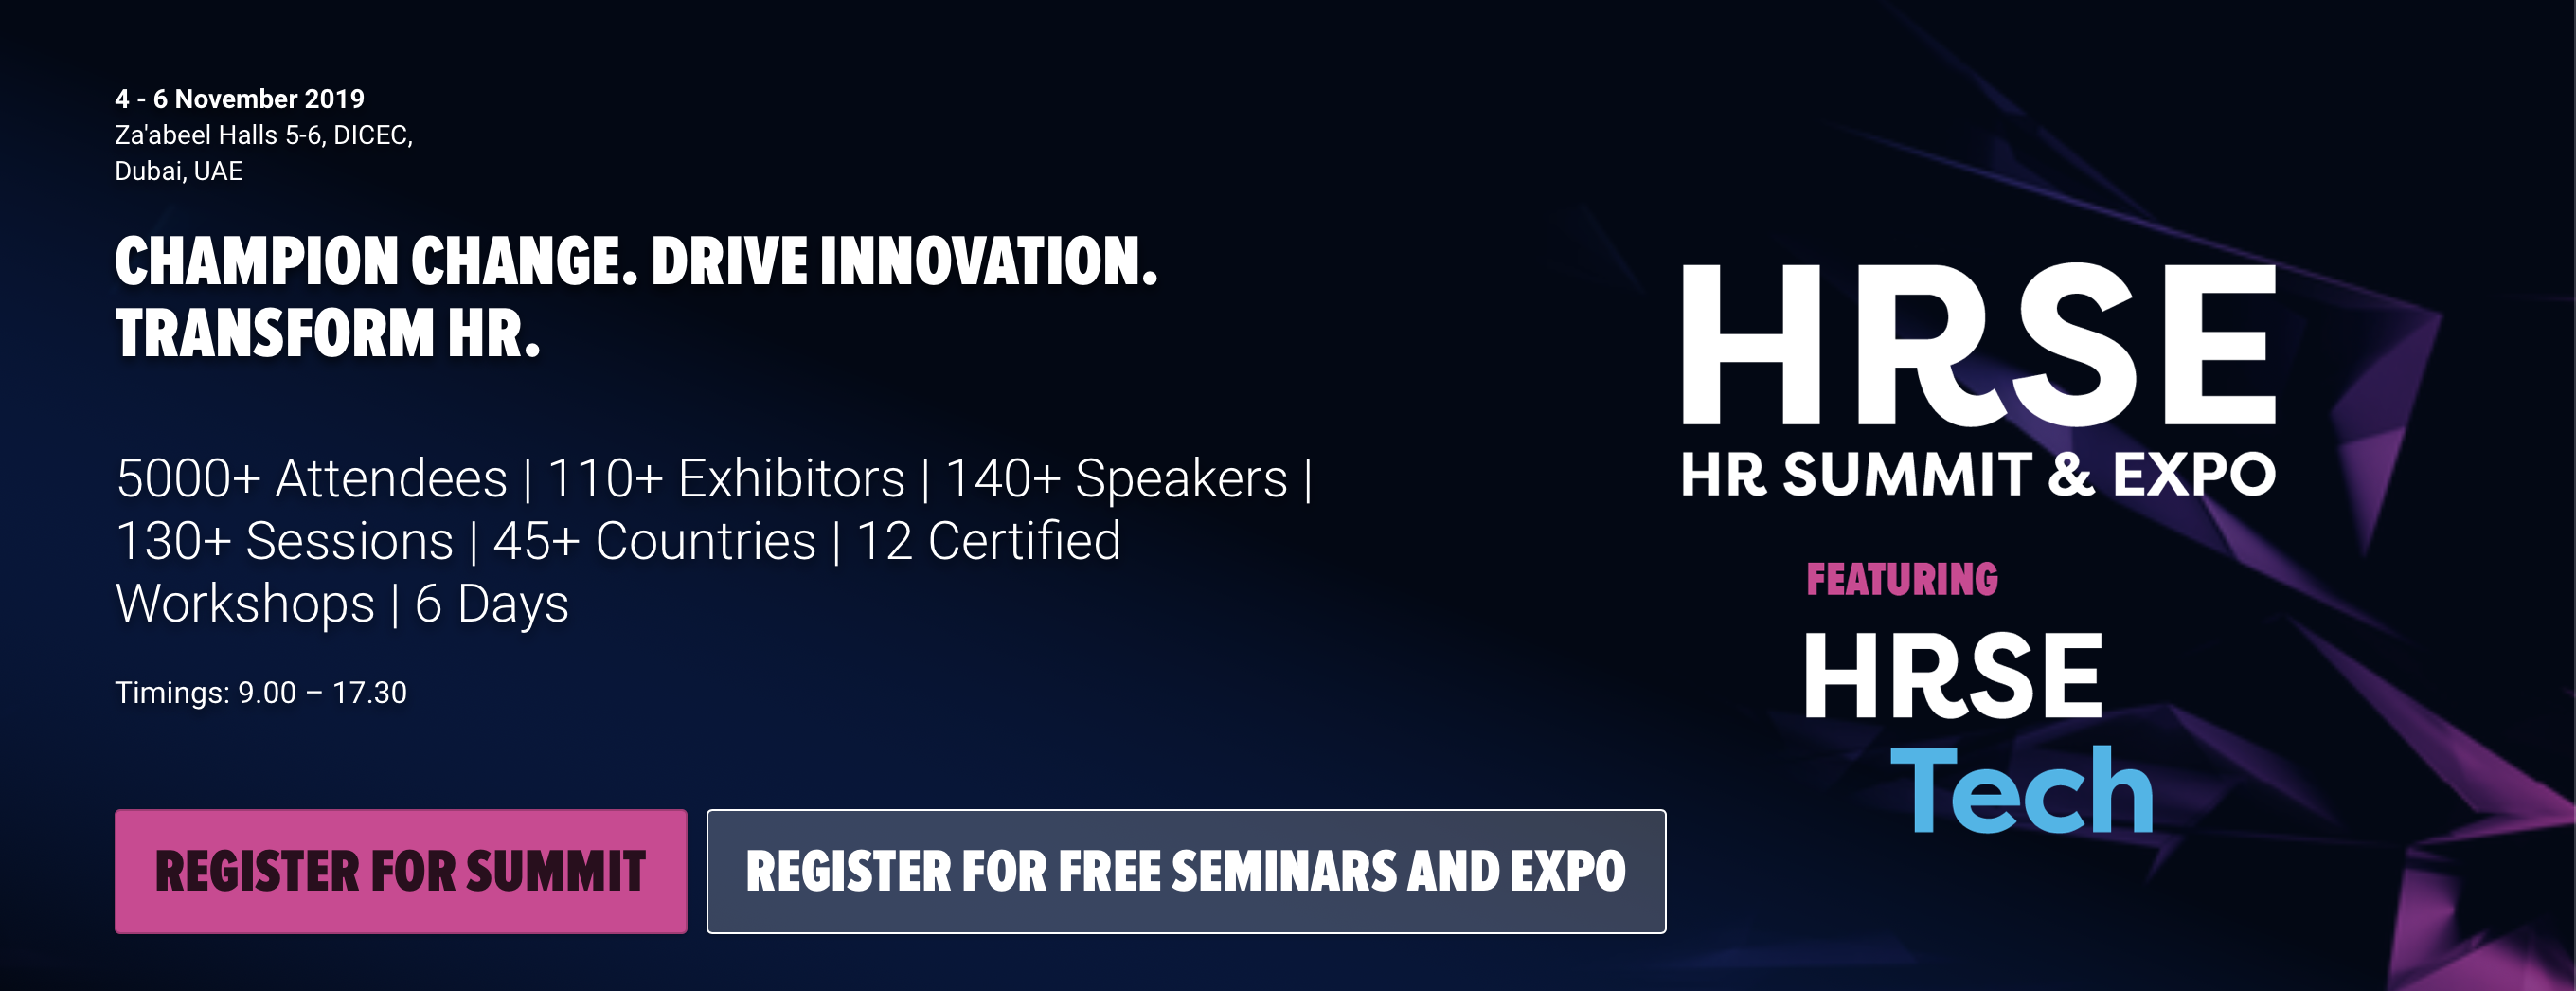 HRSE HR Summit Expo 2019